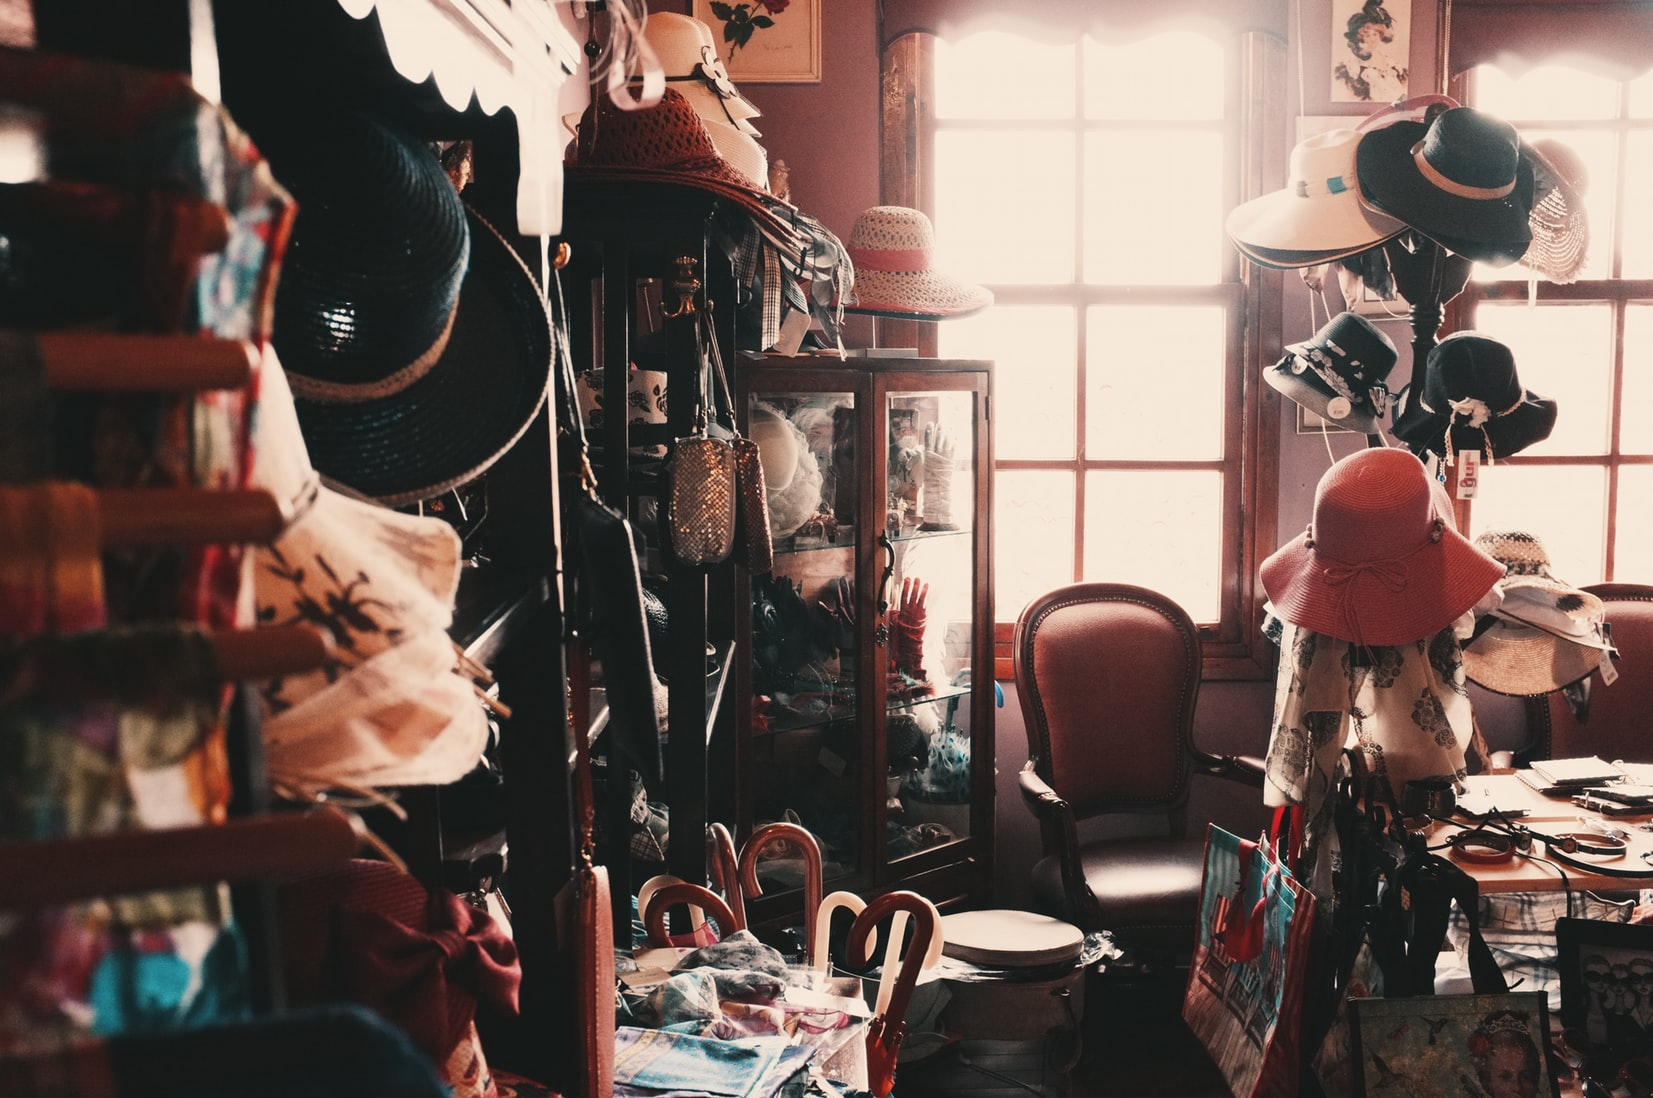 Room full of excessive hoarding of hats and other items